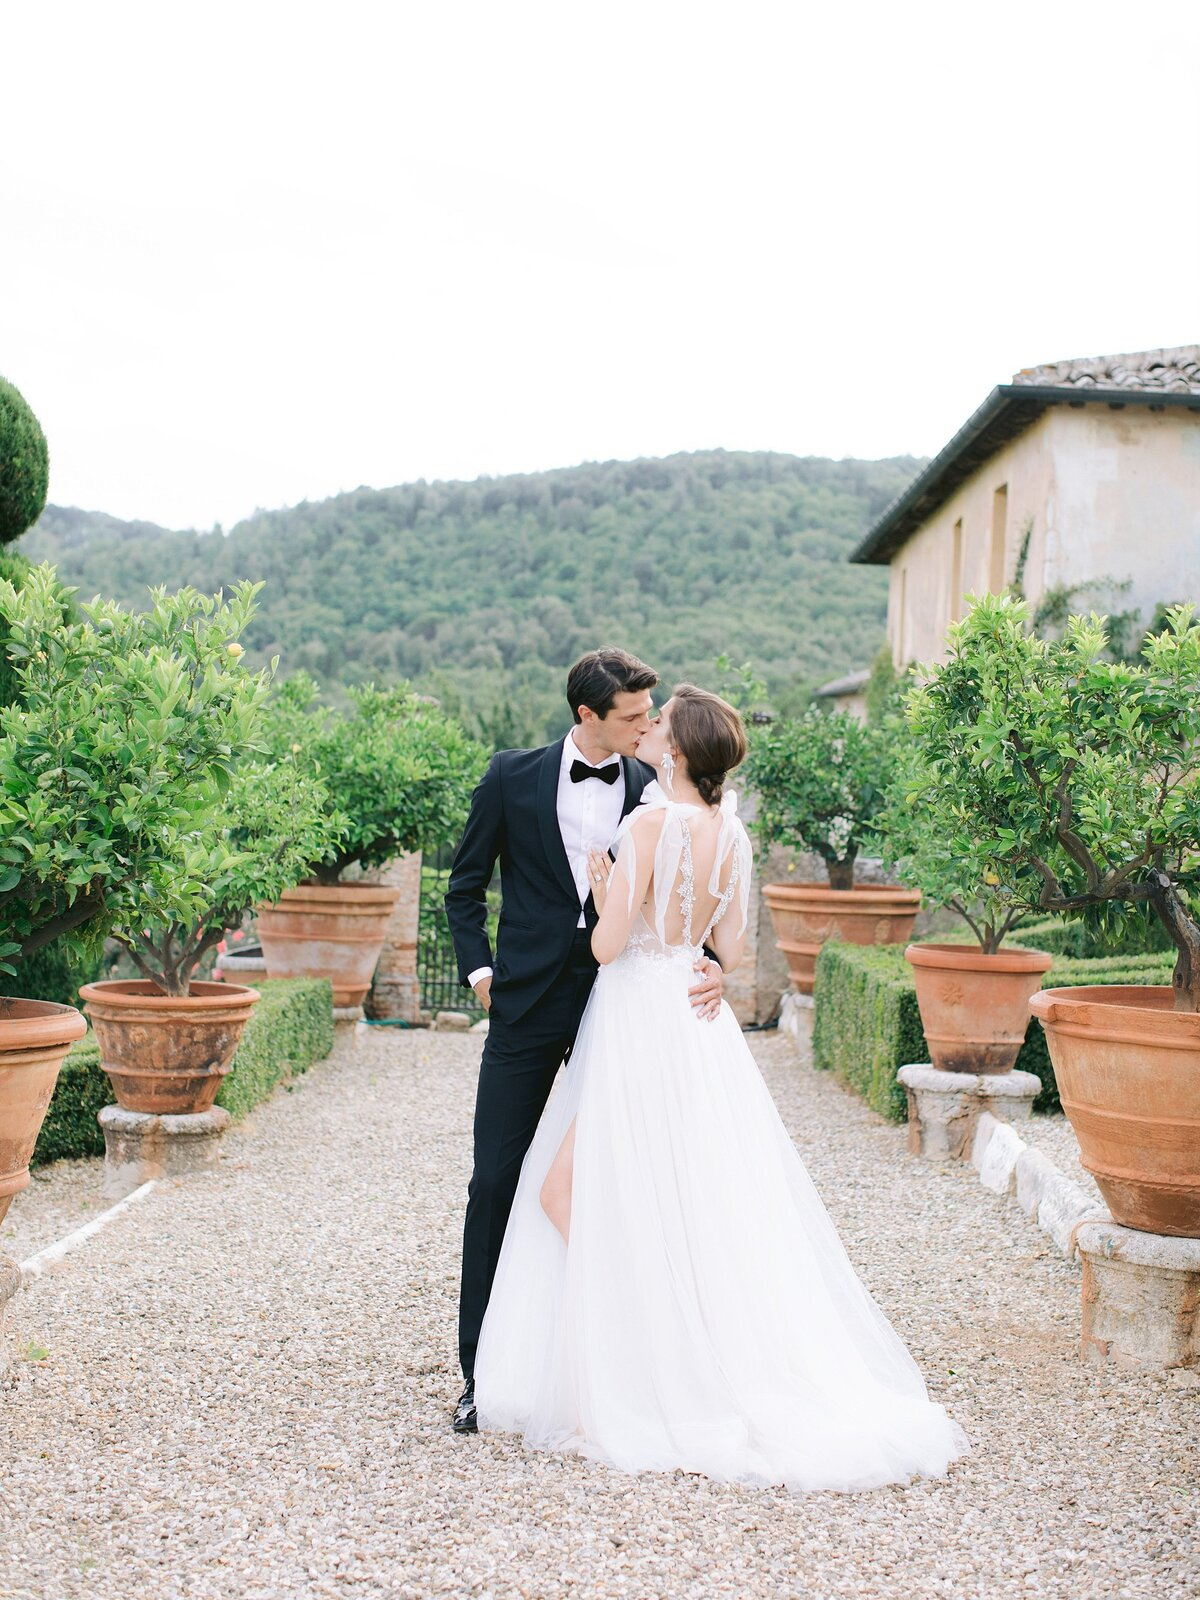 NKT-Events_Wedding-Inspiration-Editorial_Castello-di-Celsa_0049